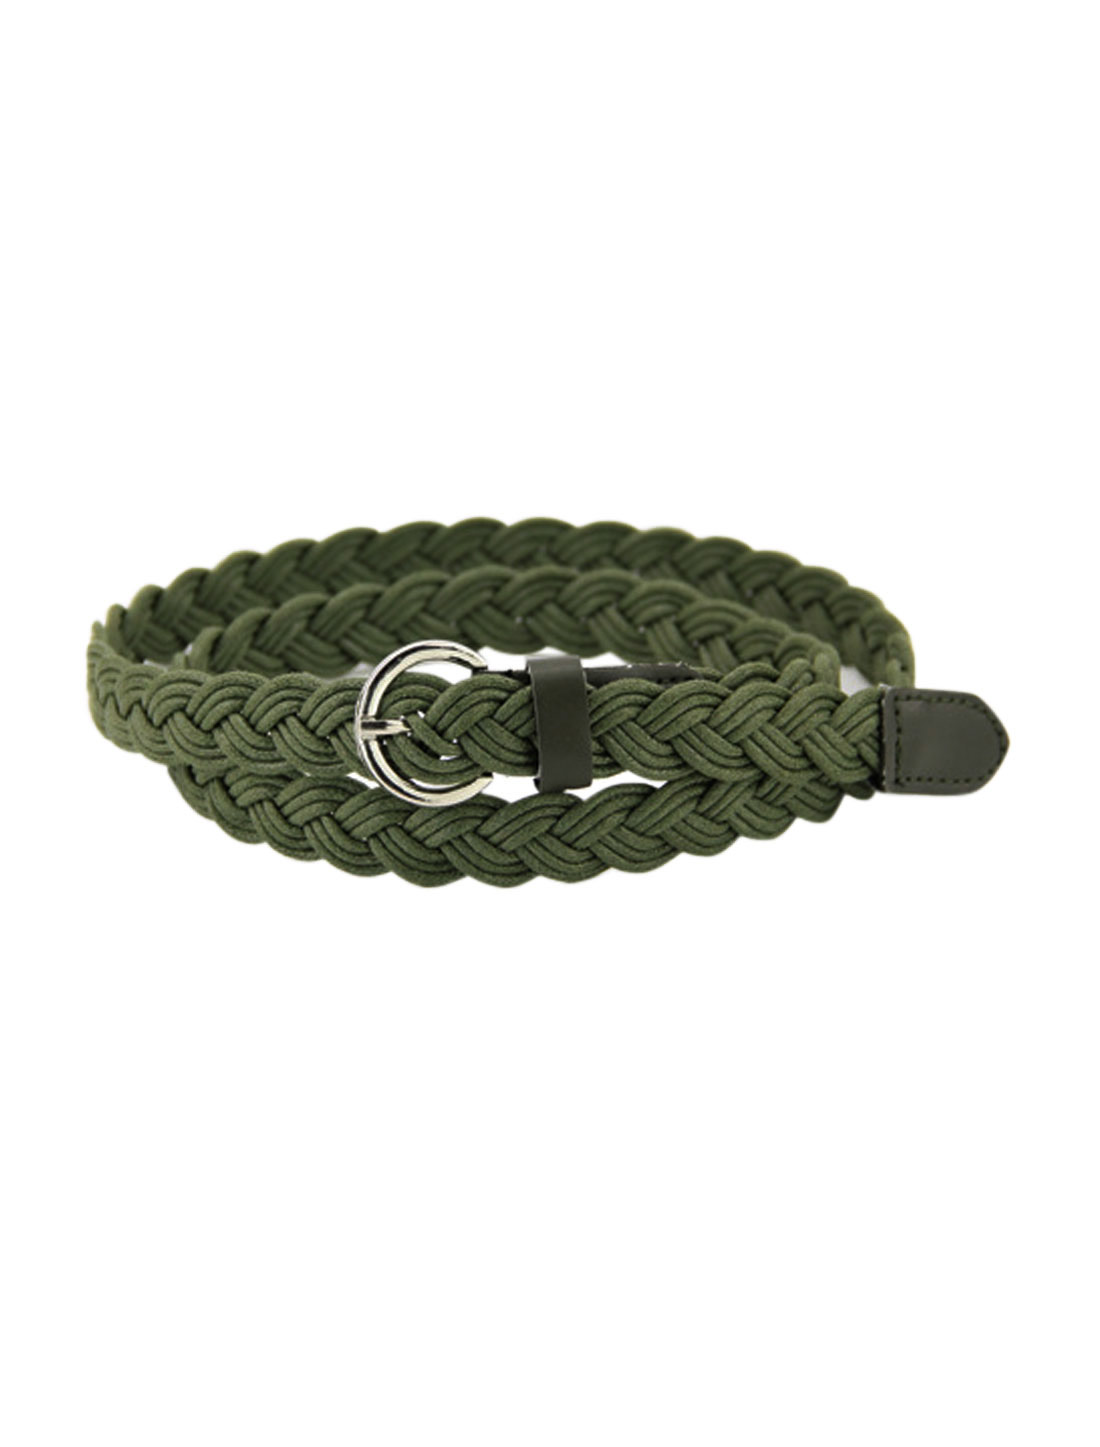 Women Adjustable Single Pin Buckle Skinny Braided Belt Green